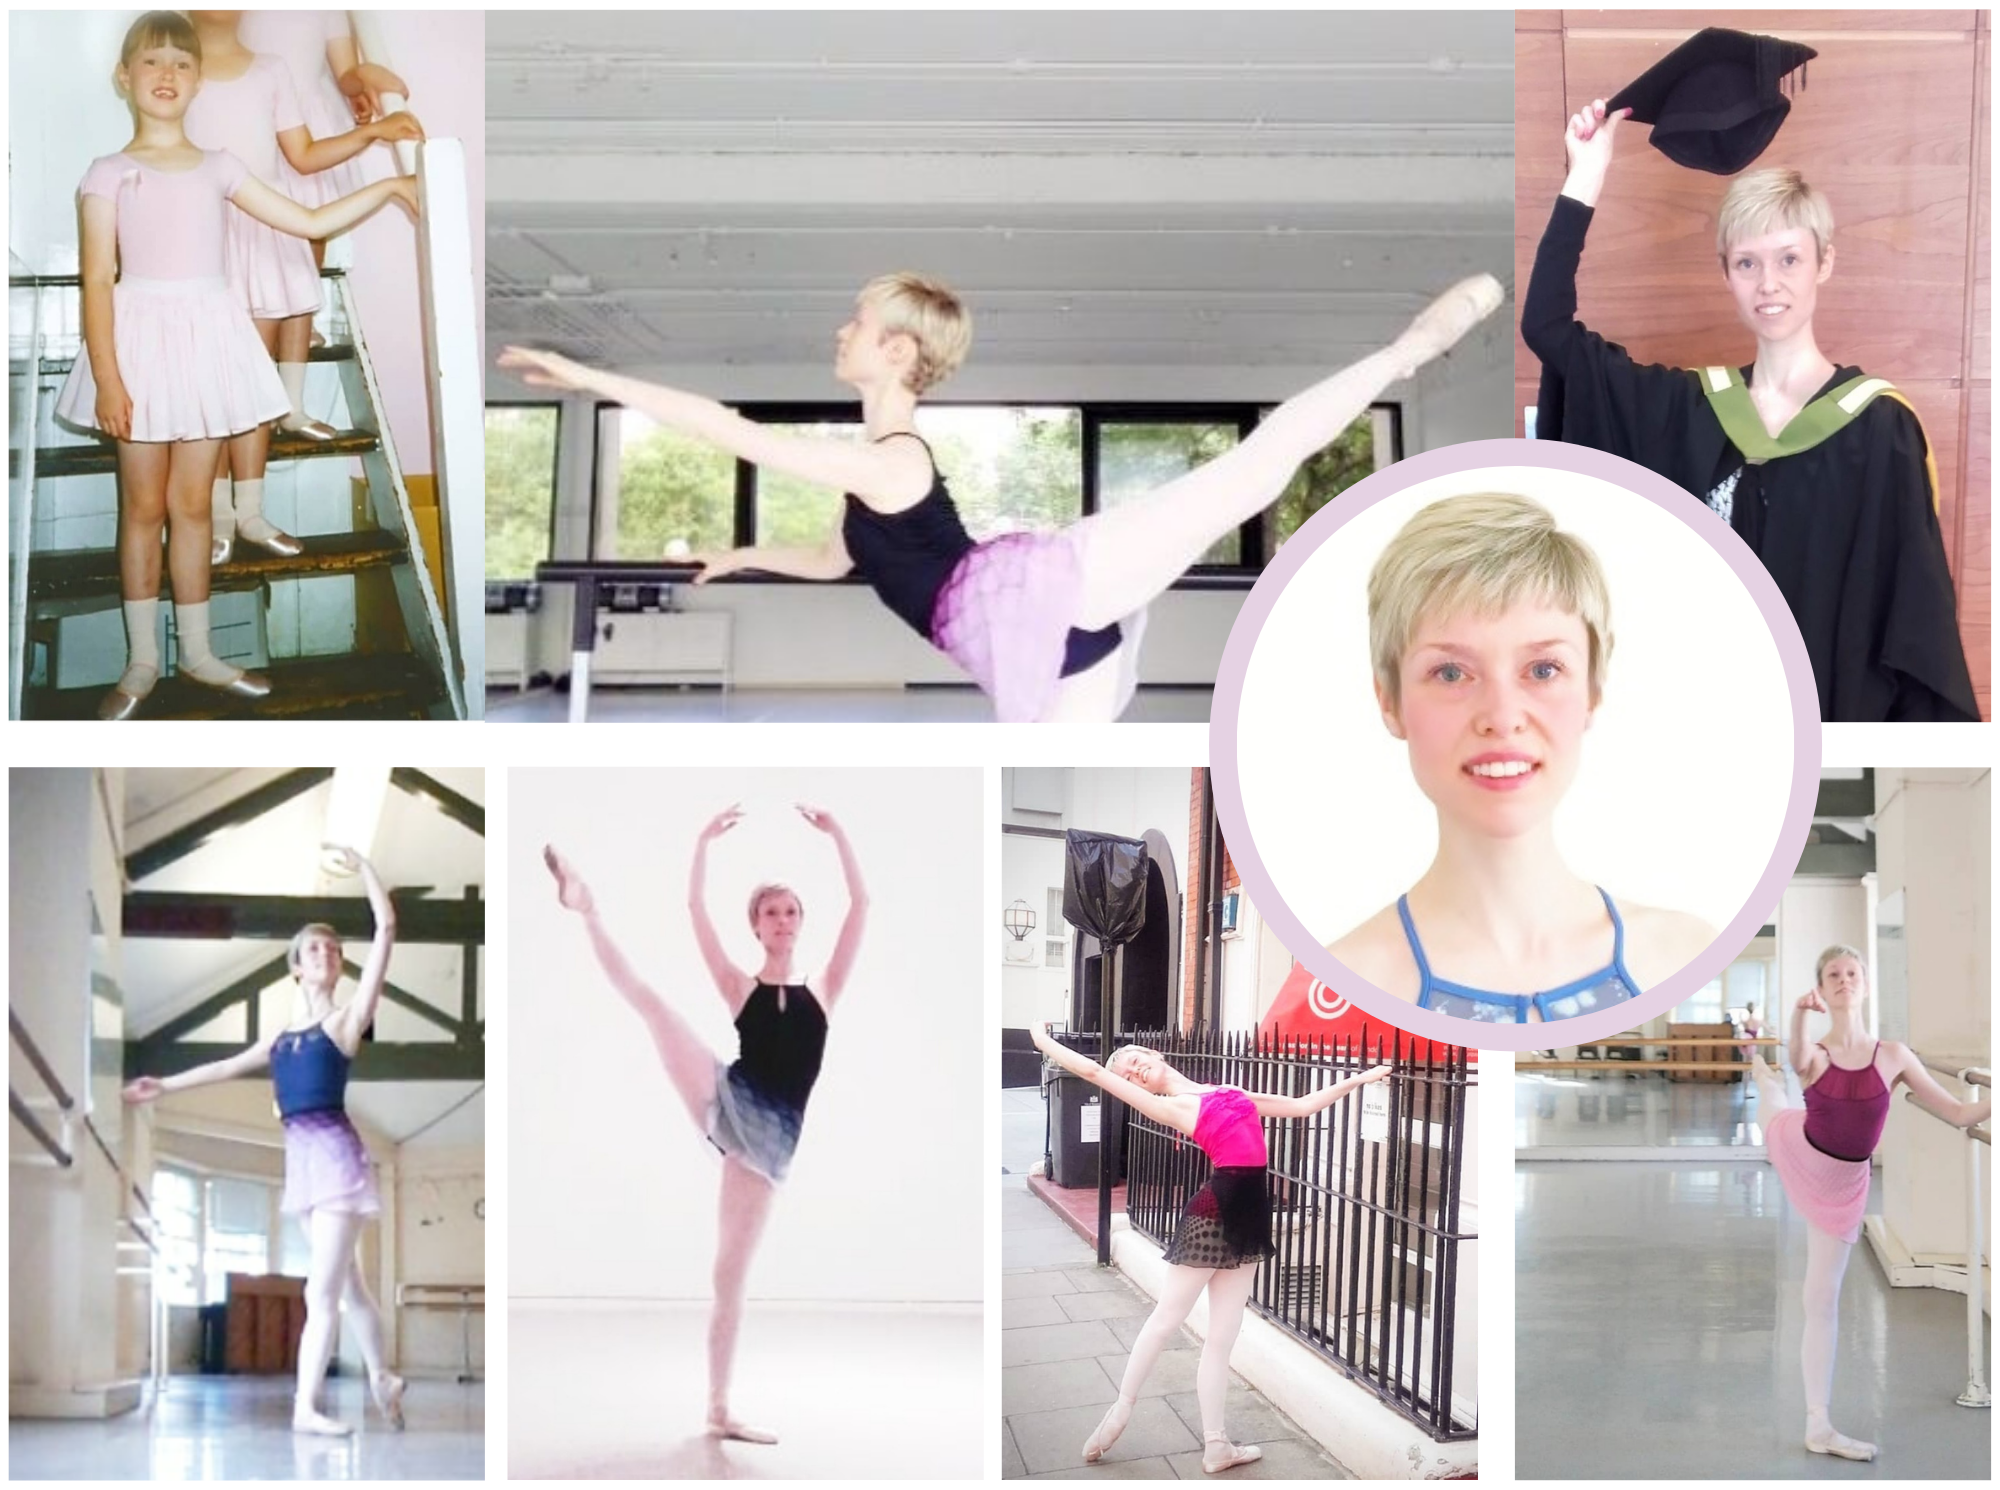 Photographs of Georgina Butler arranged in a collage. From baby ballerina to Royal Academy of Dance graduate and teacher.